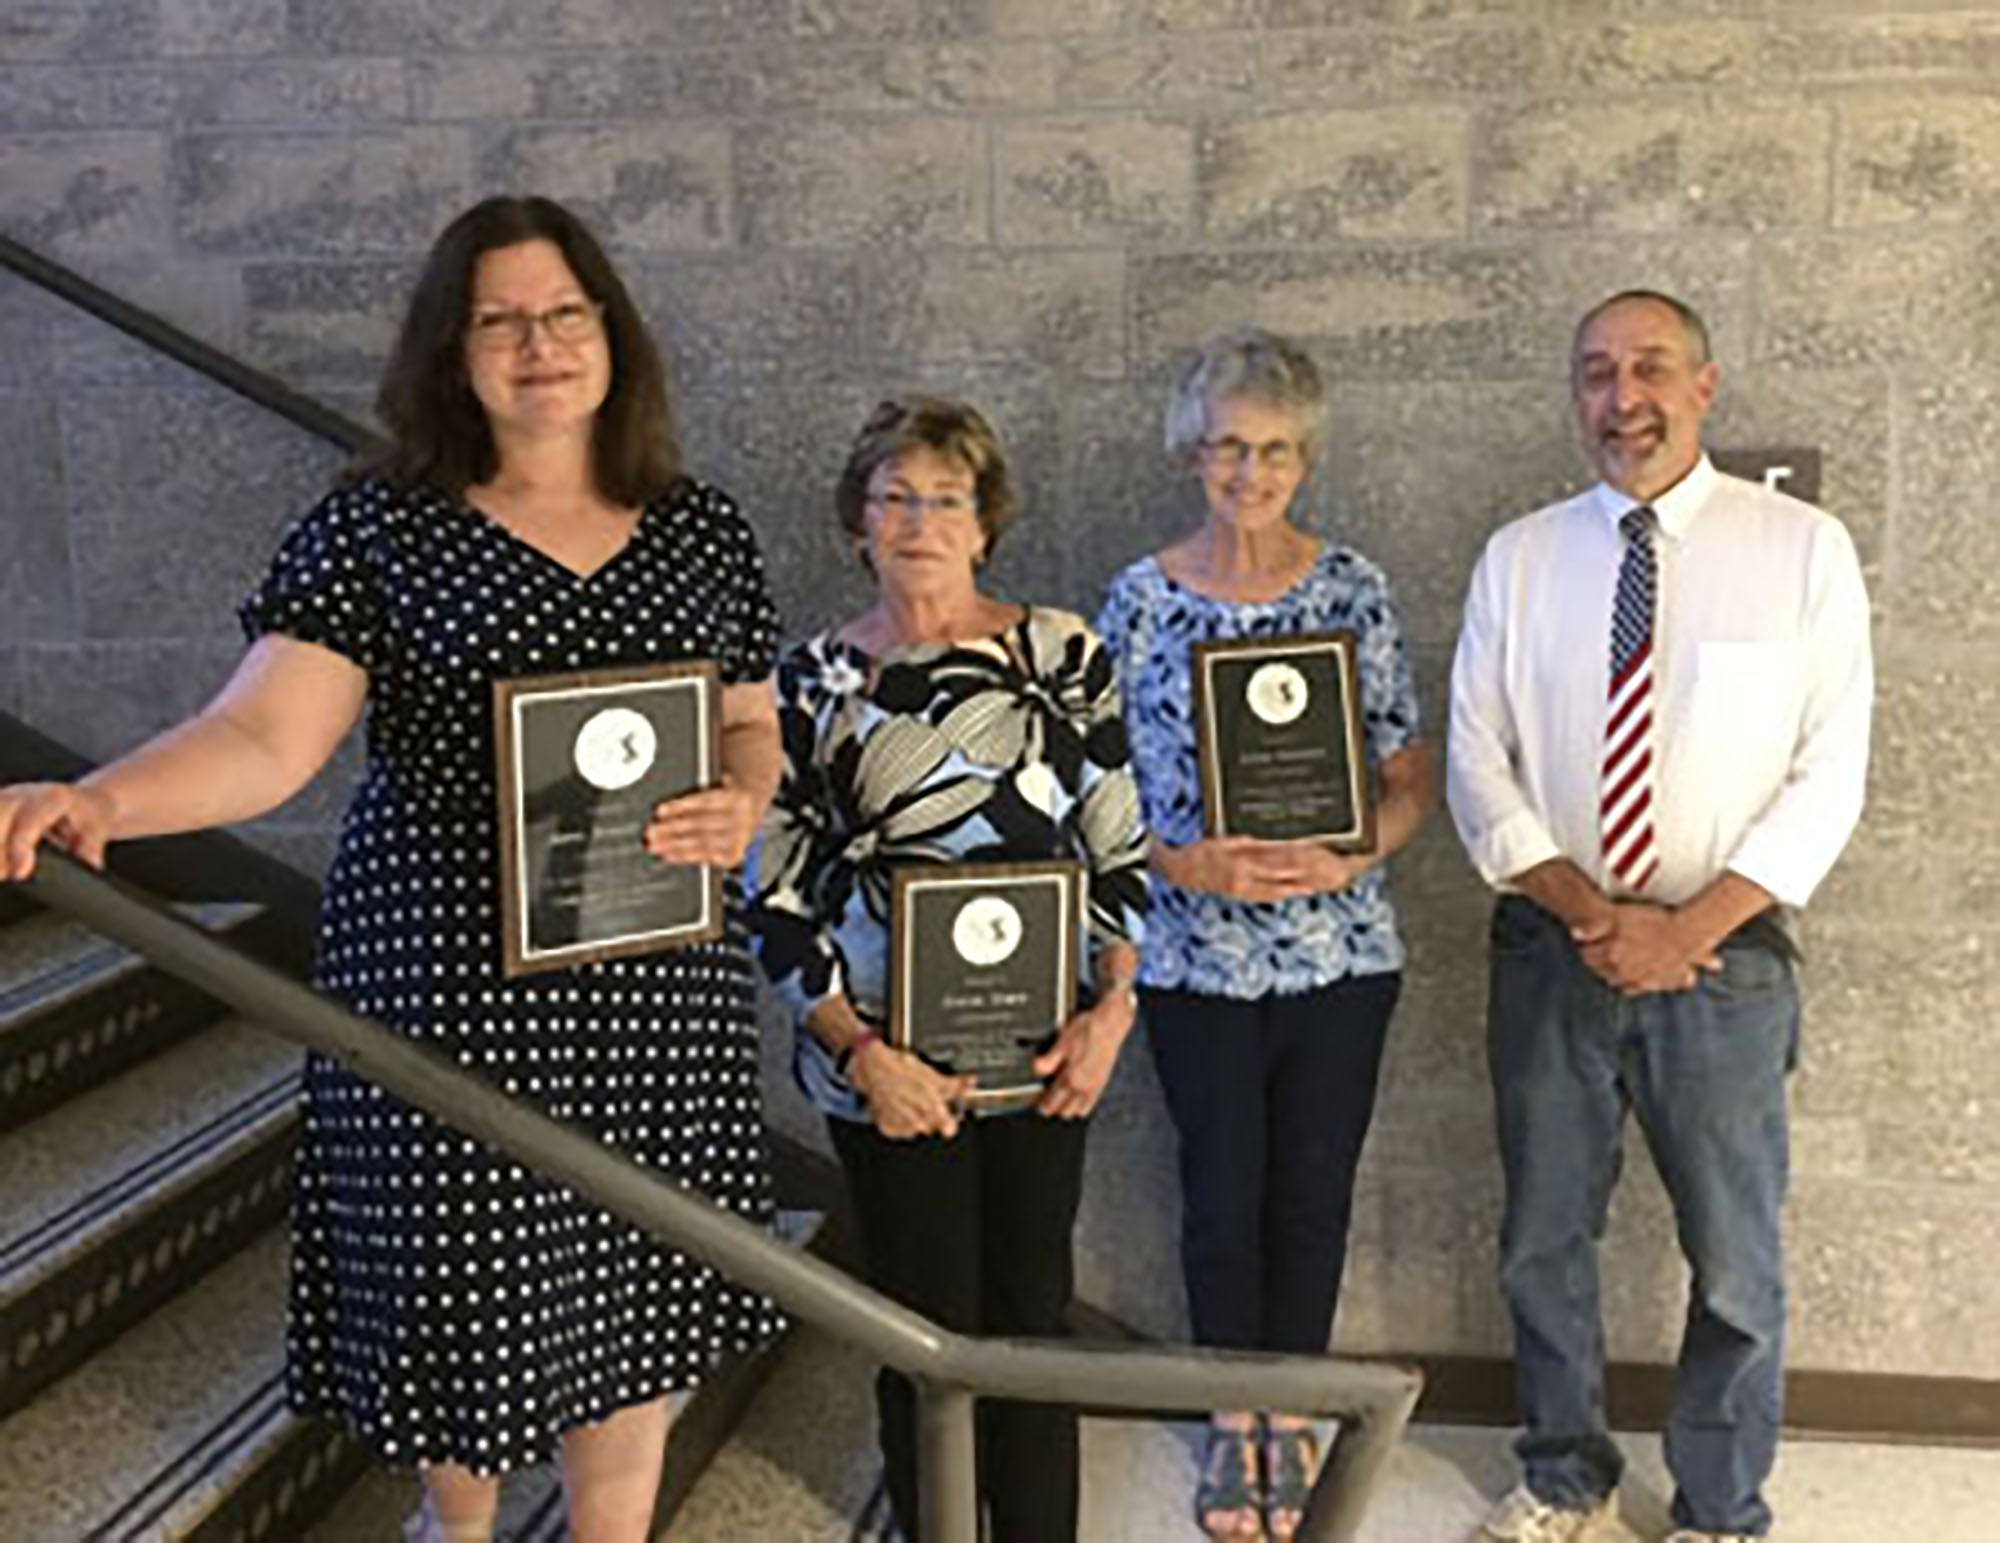 Four of the 12 teachers who are retiring this year from the Wallingford-Swarthmore School District attended Monday's School Board meeting and received honorary plaques. From left to right: Jane Rondepierre, Diane Silzle, Anne Mulhern, and Mark Rosenberg.  Photo by Philip Host.